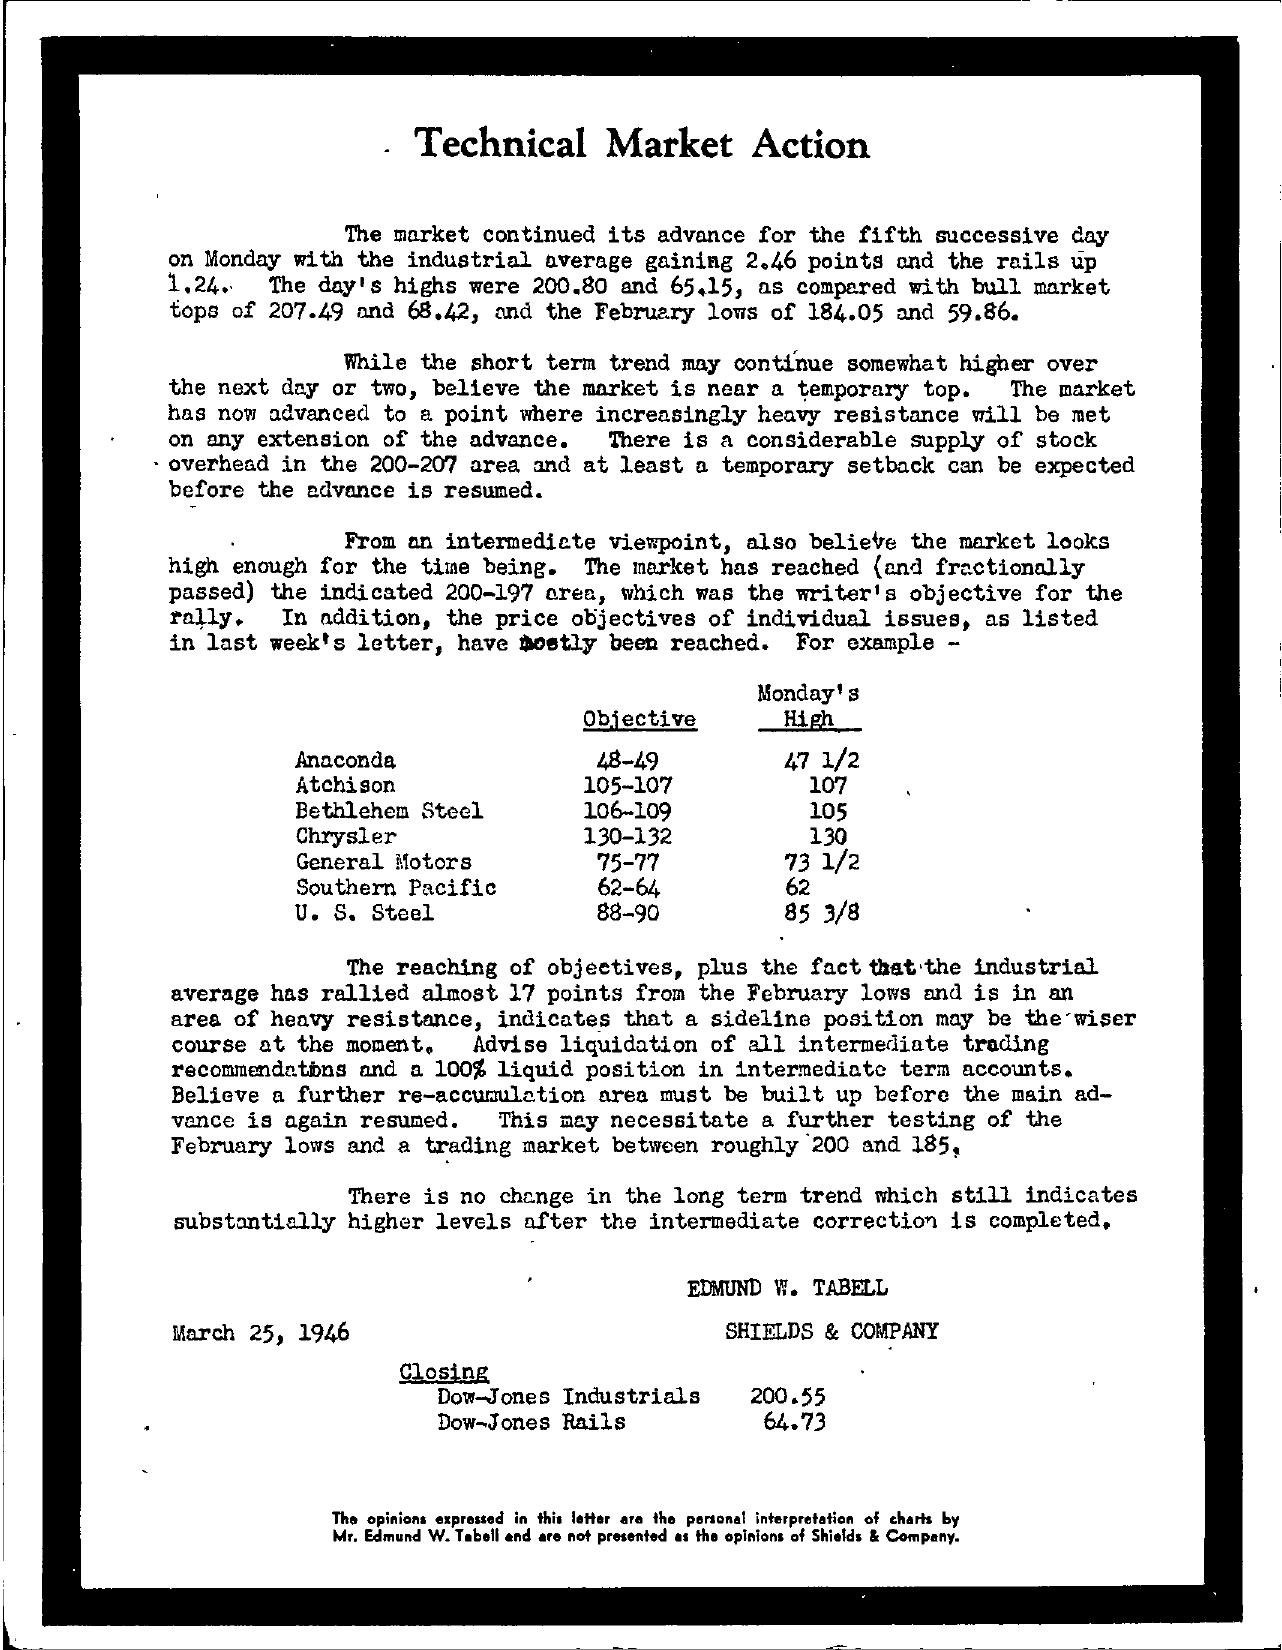 Tabell's Market Letter - March 25, 1946